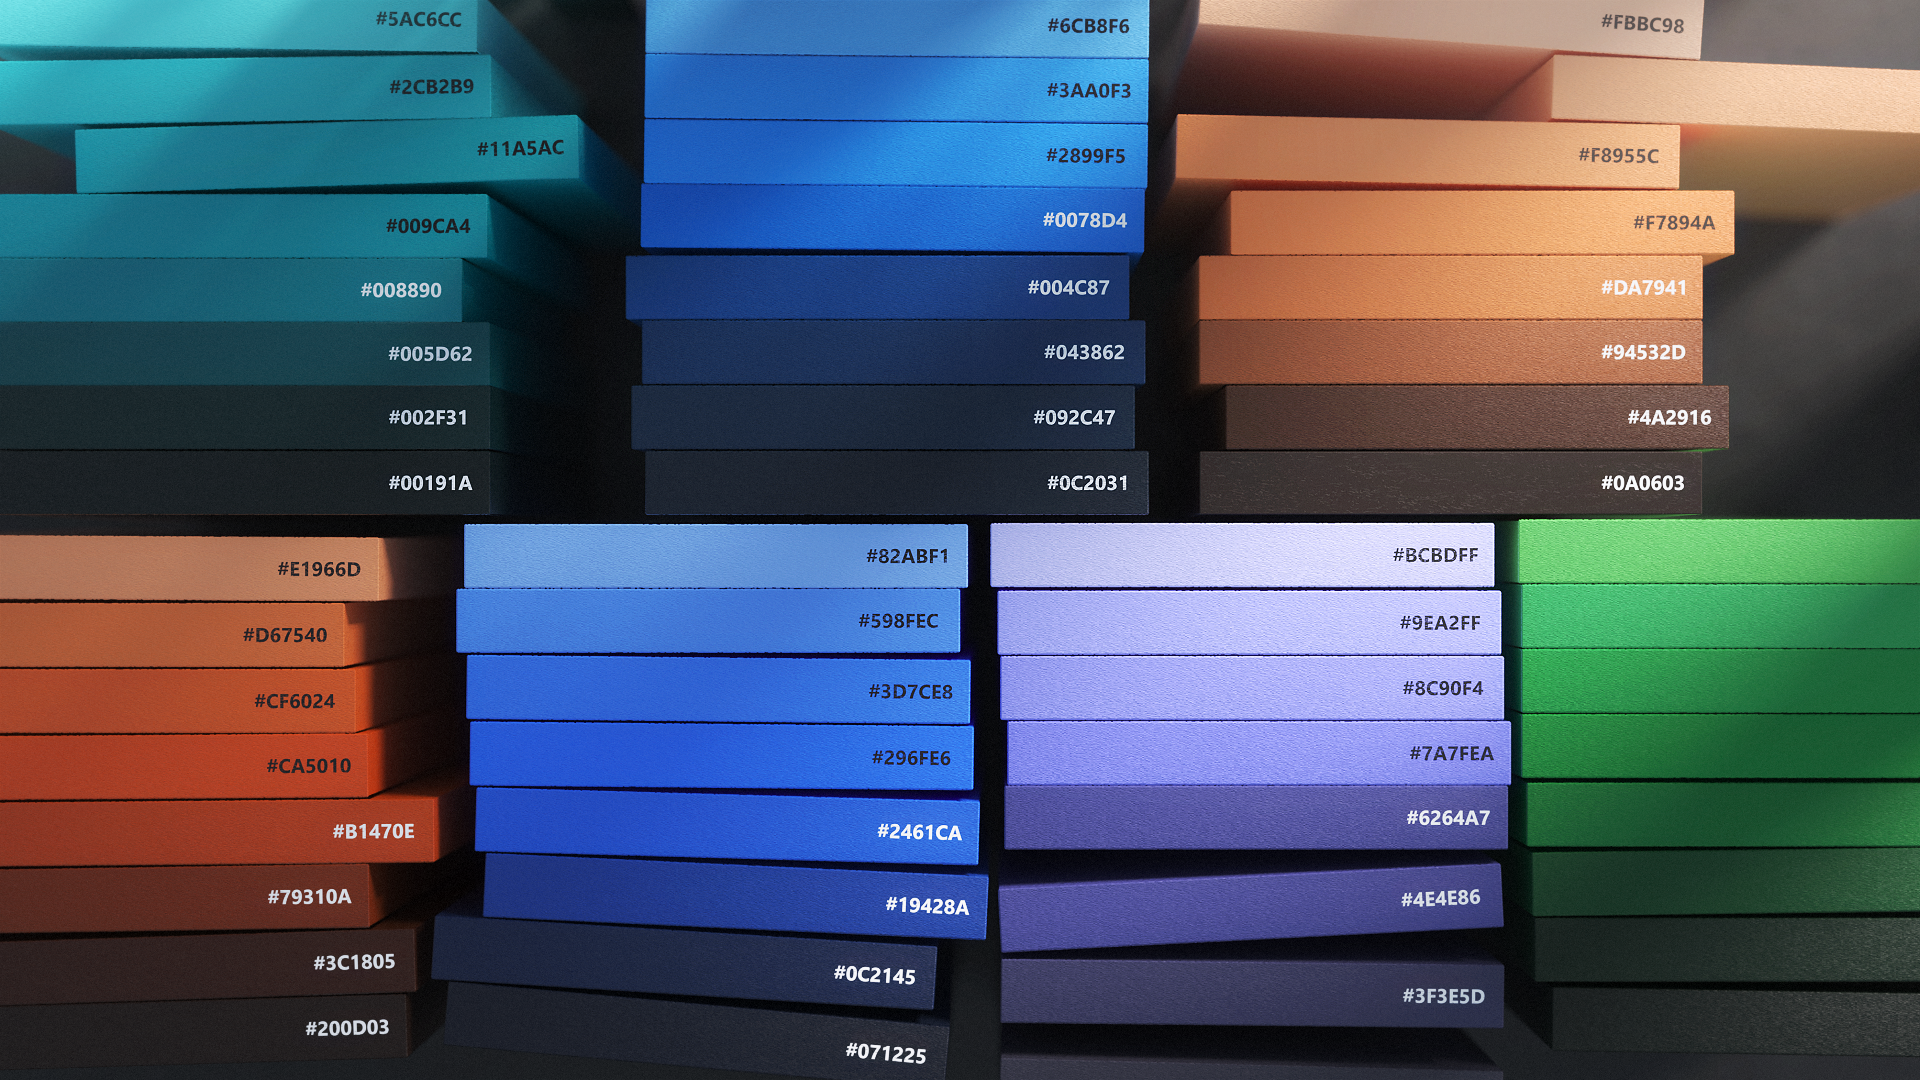 Colo palettes for blues, purples, greens, and oranges.